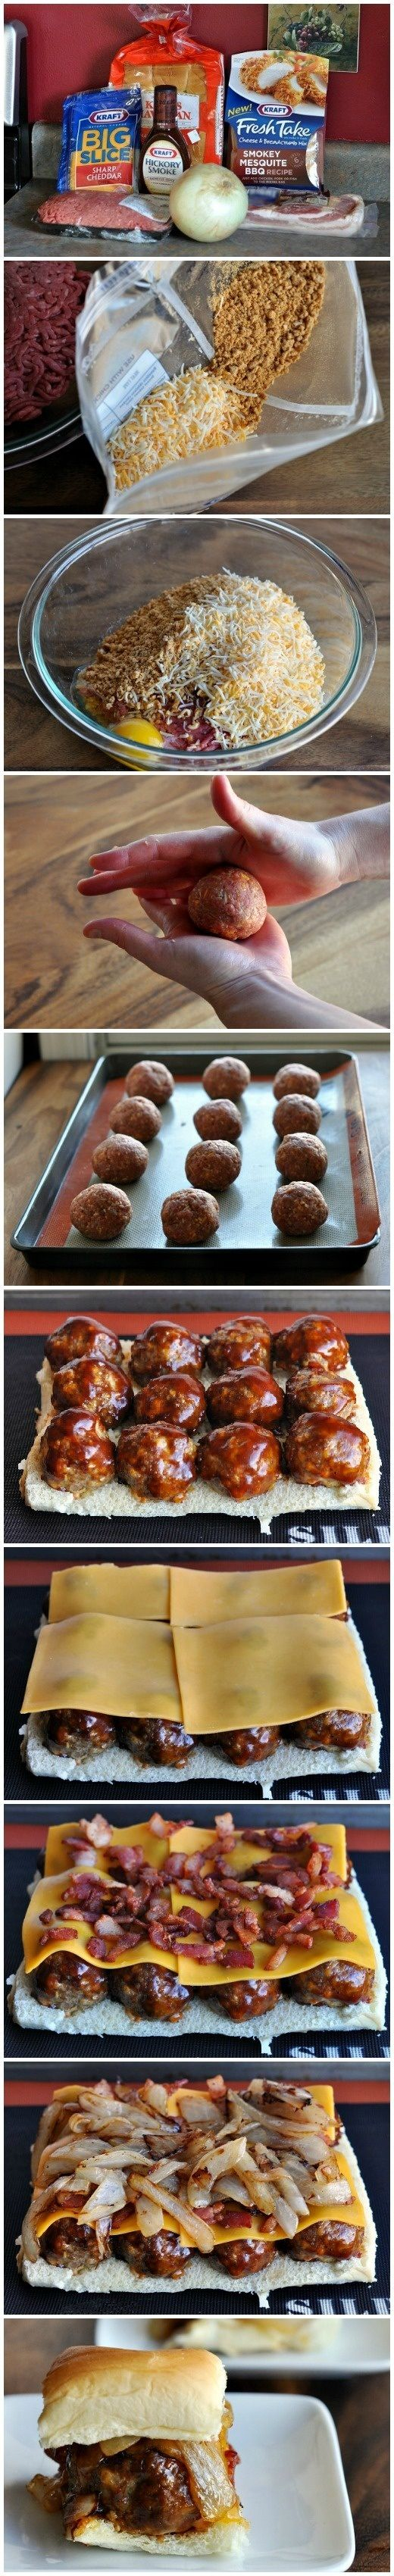 how to make easy meatballs without eggs